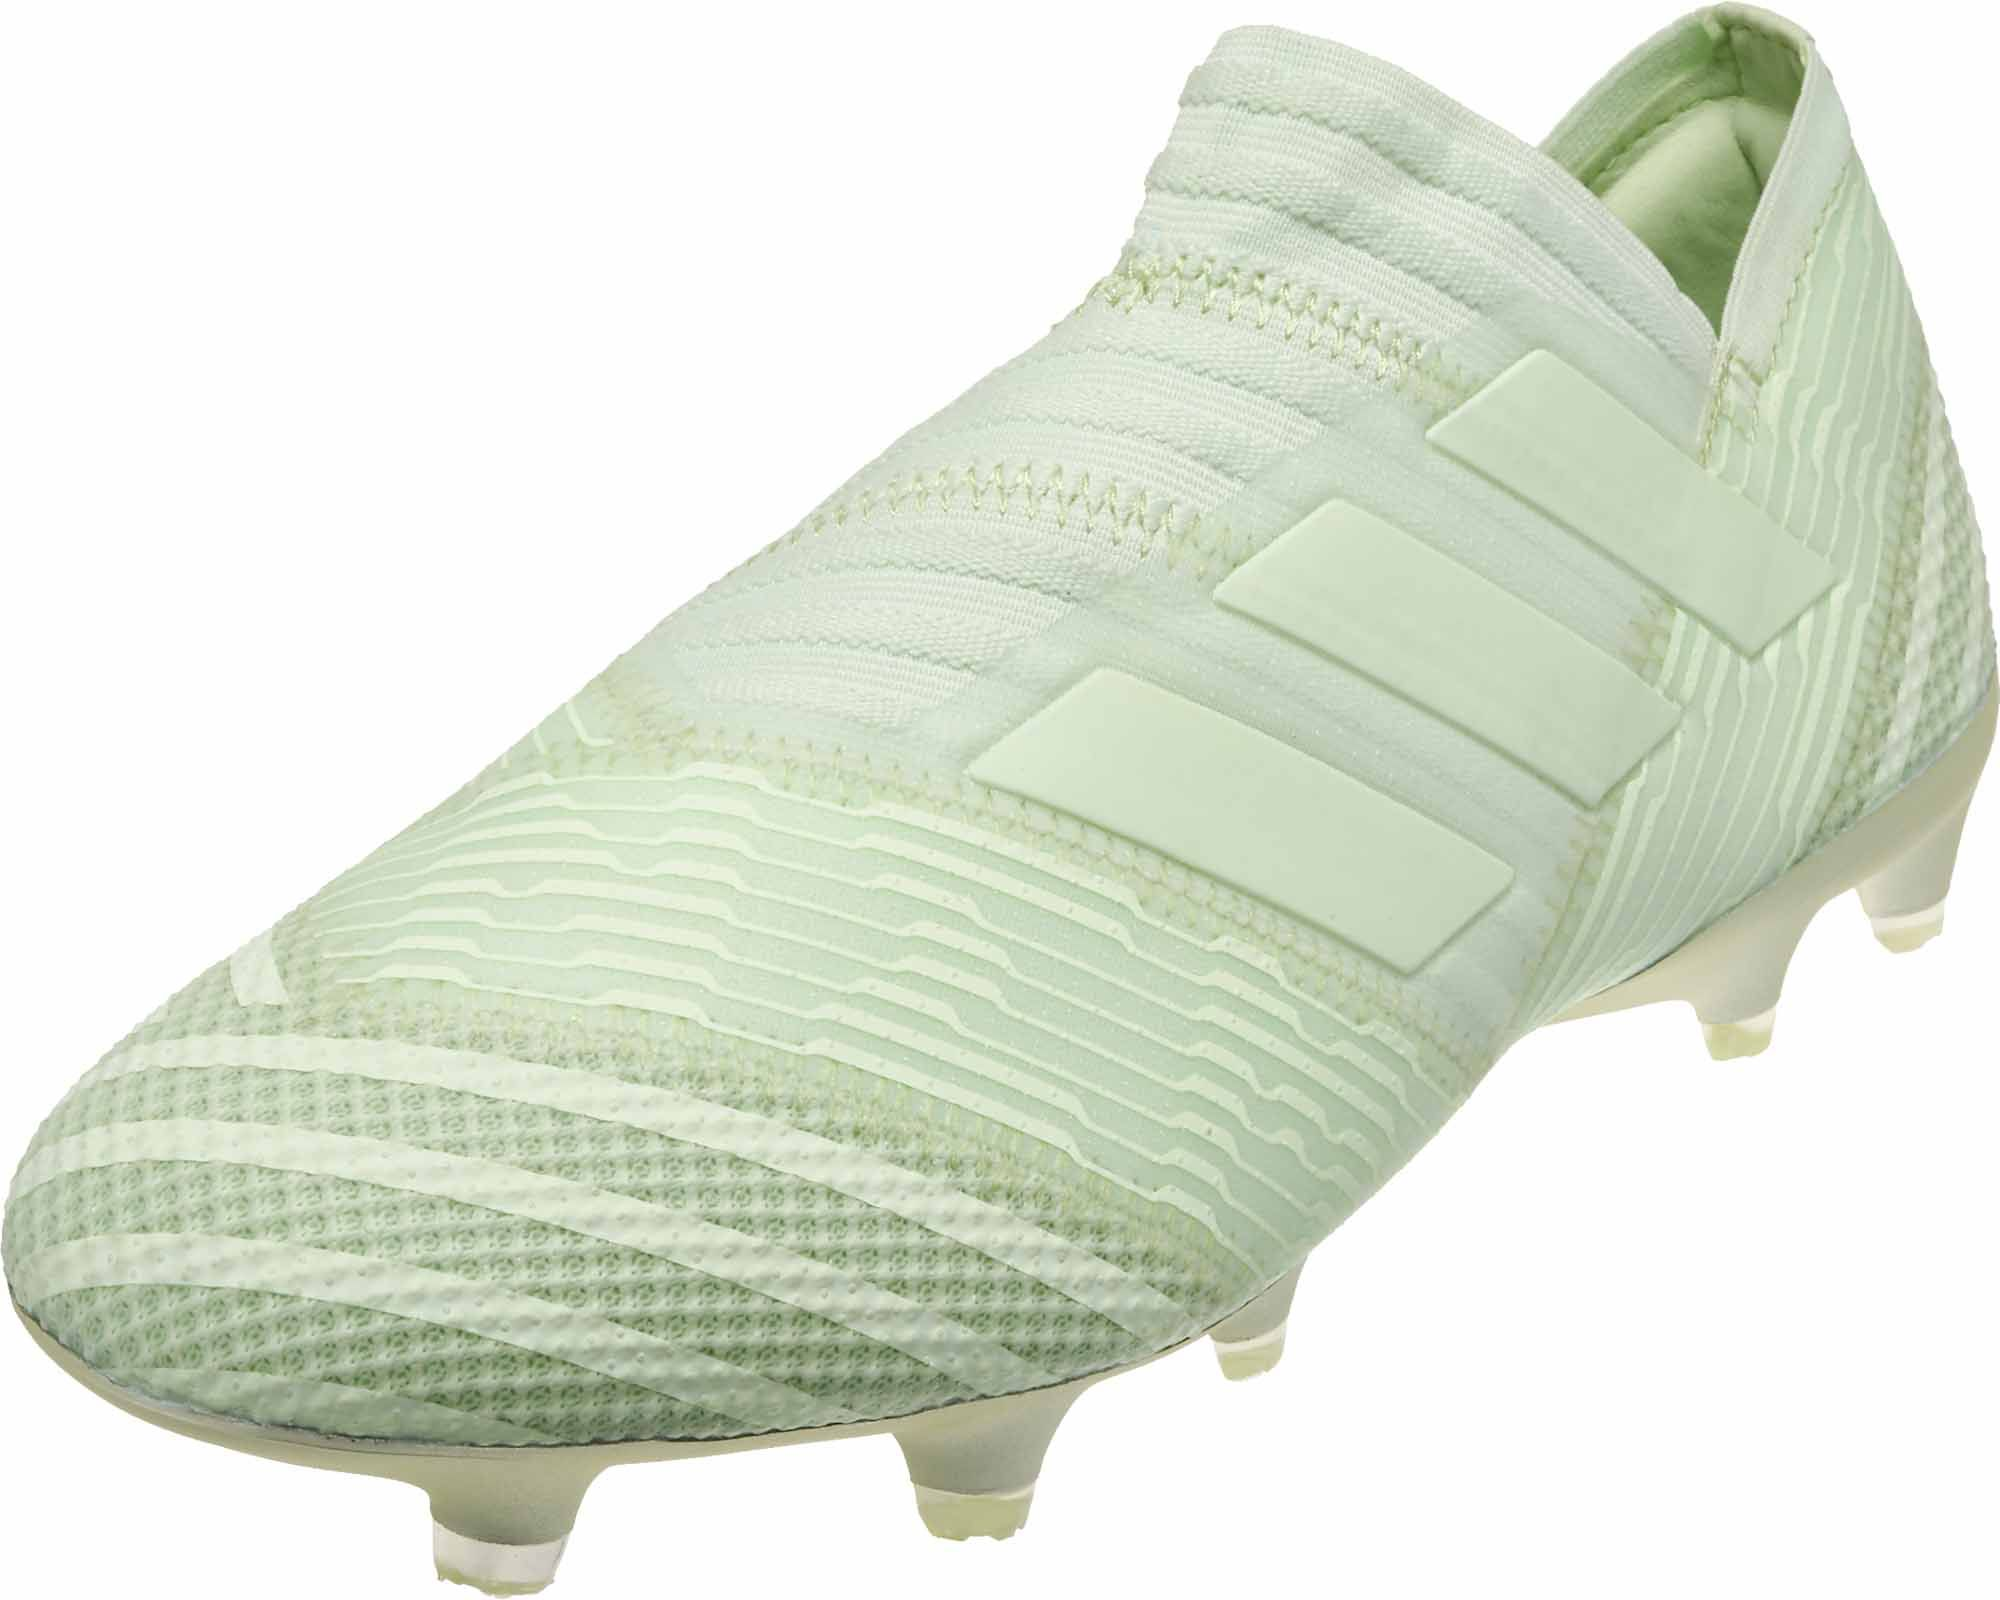 check out 08810 92651 Deadly Strike pack adidas Nemeziz 17+. Buy it from SoccerPro.